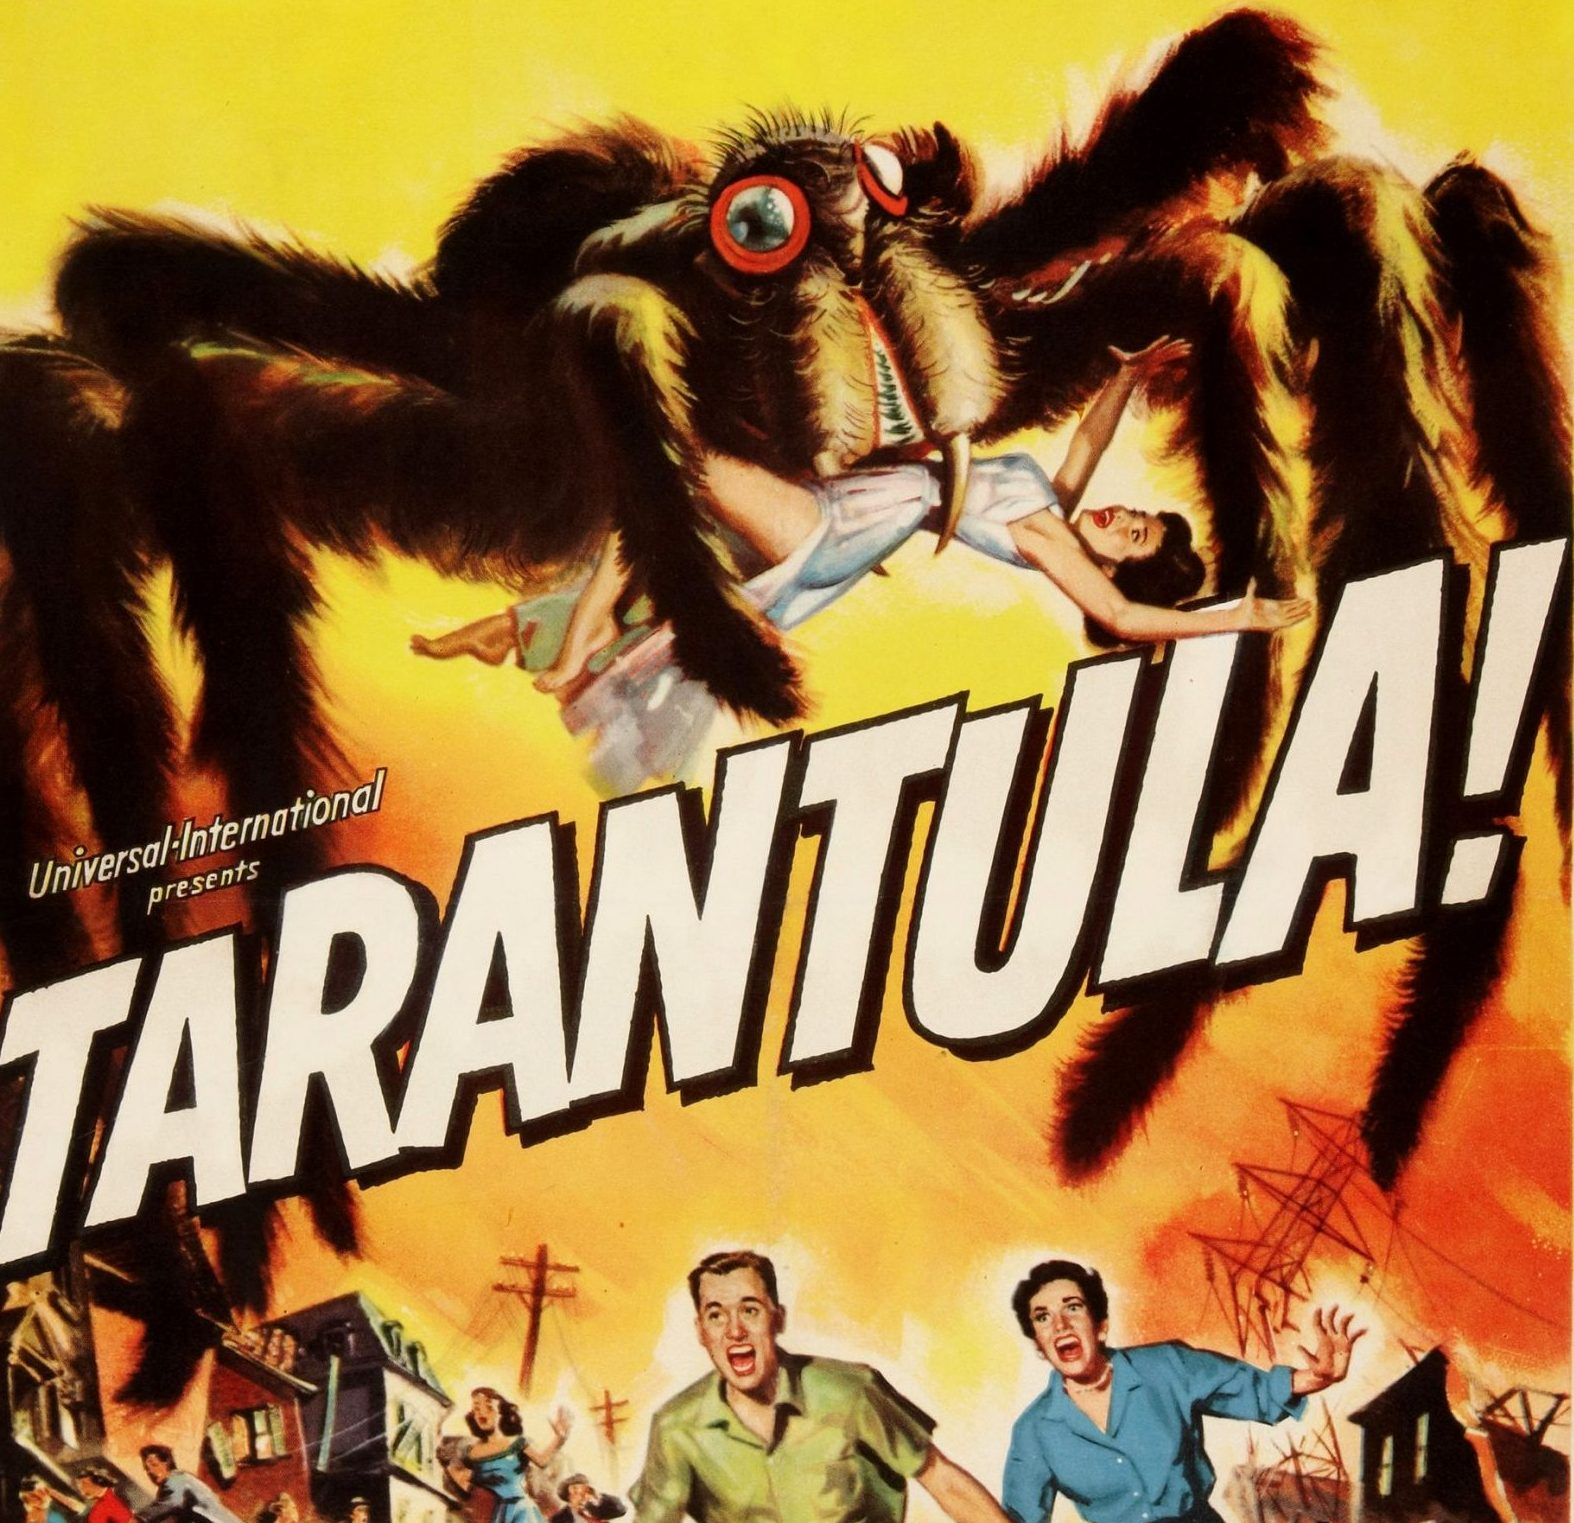 Tarantula 1955 scaled e1624962156291 20 Things You Probably Didn't Know About Clint Eastwood's 1982 Film Firefox